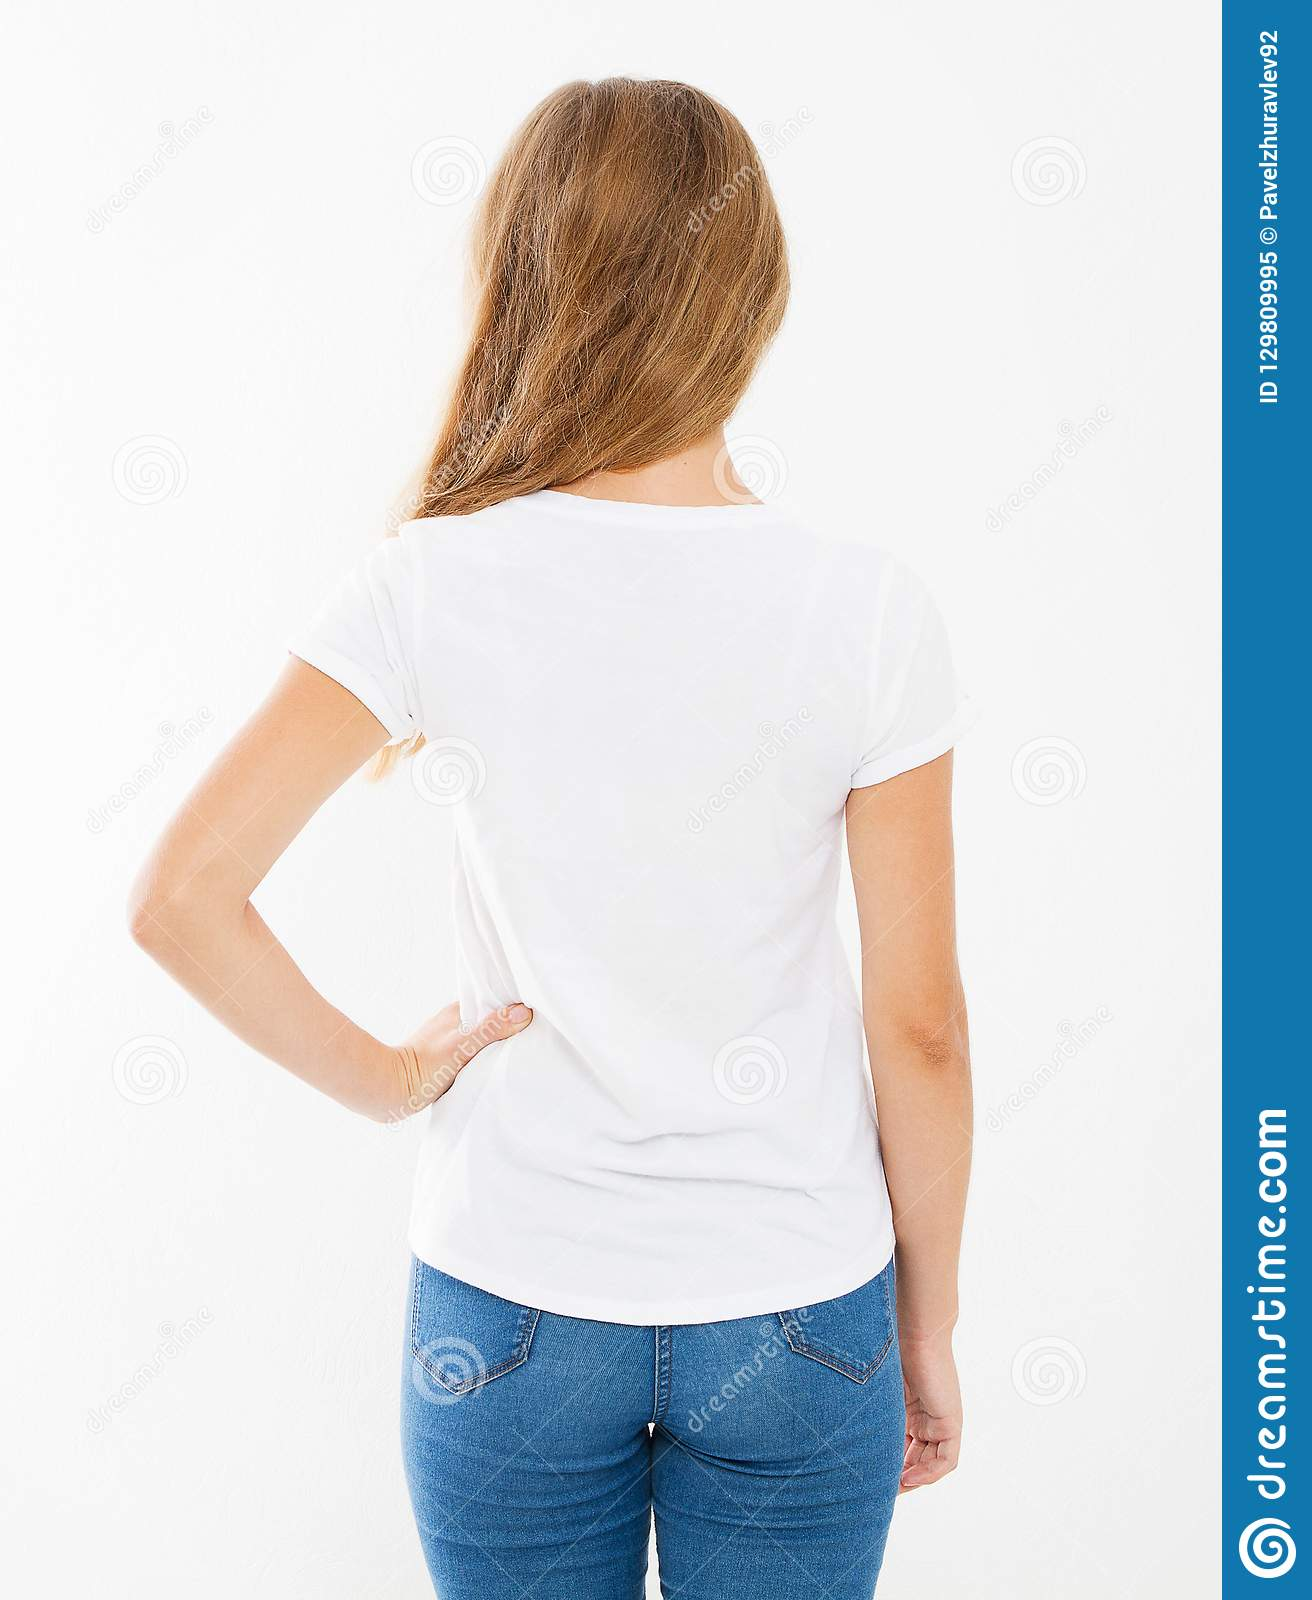 Back view woman in blank white t-shirt. t shirt design and people concept. Shirts front view isolated on white background, mo